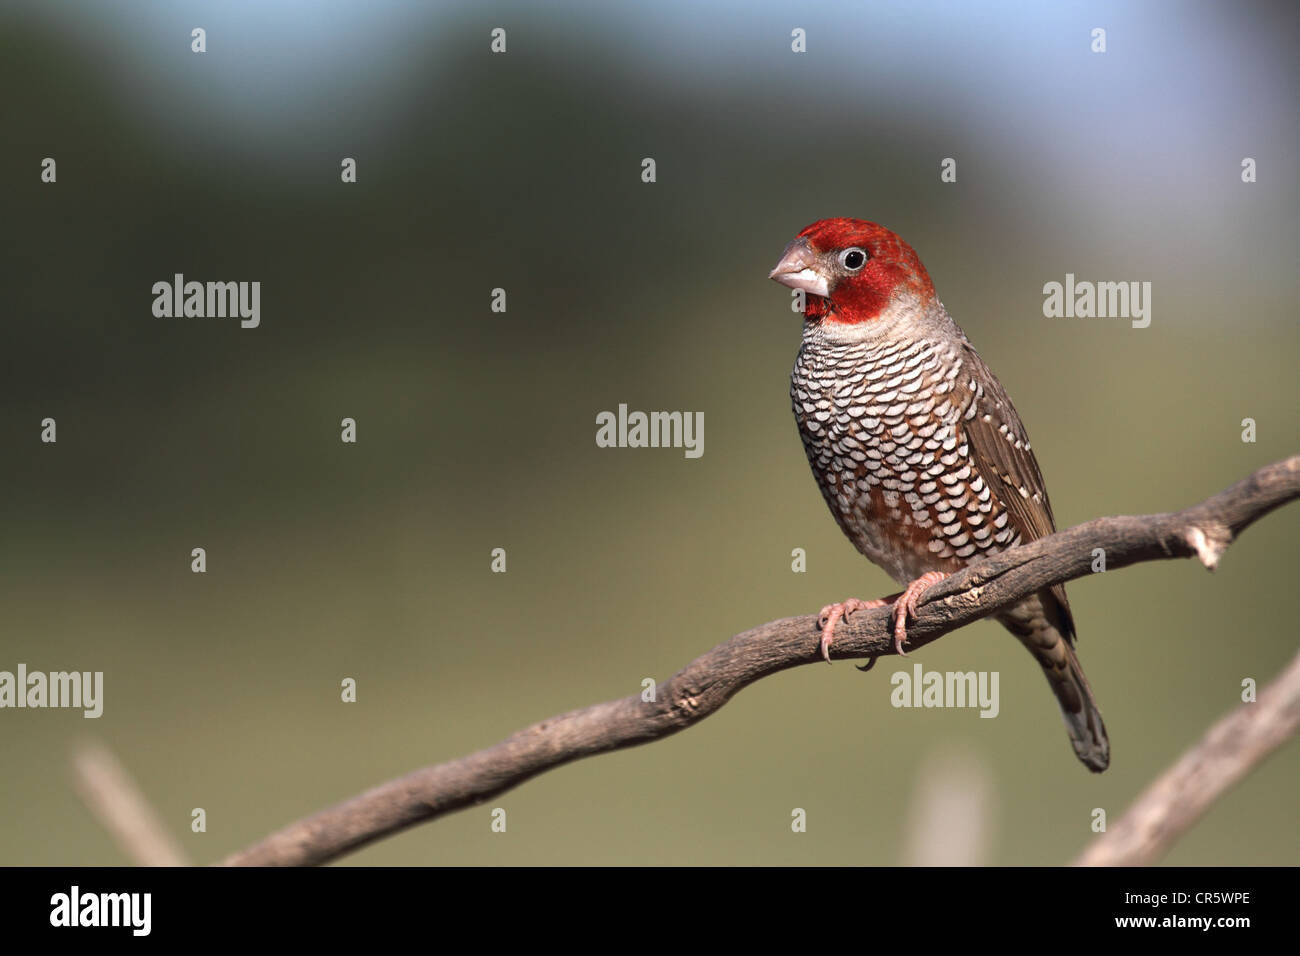 redheaded finch, single adult male perched - Stock Image